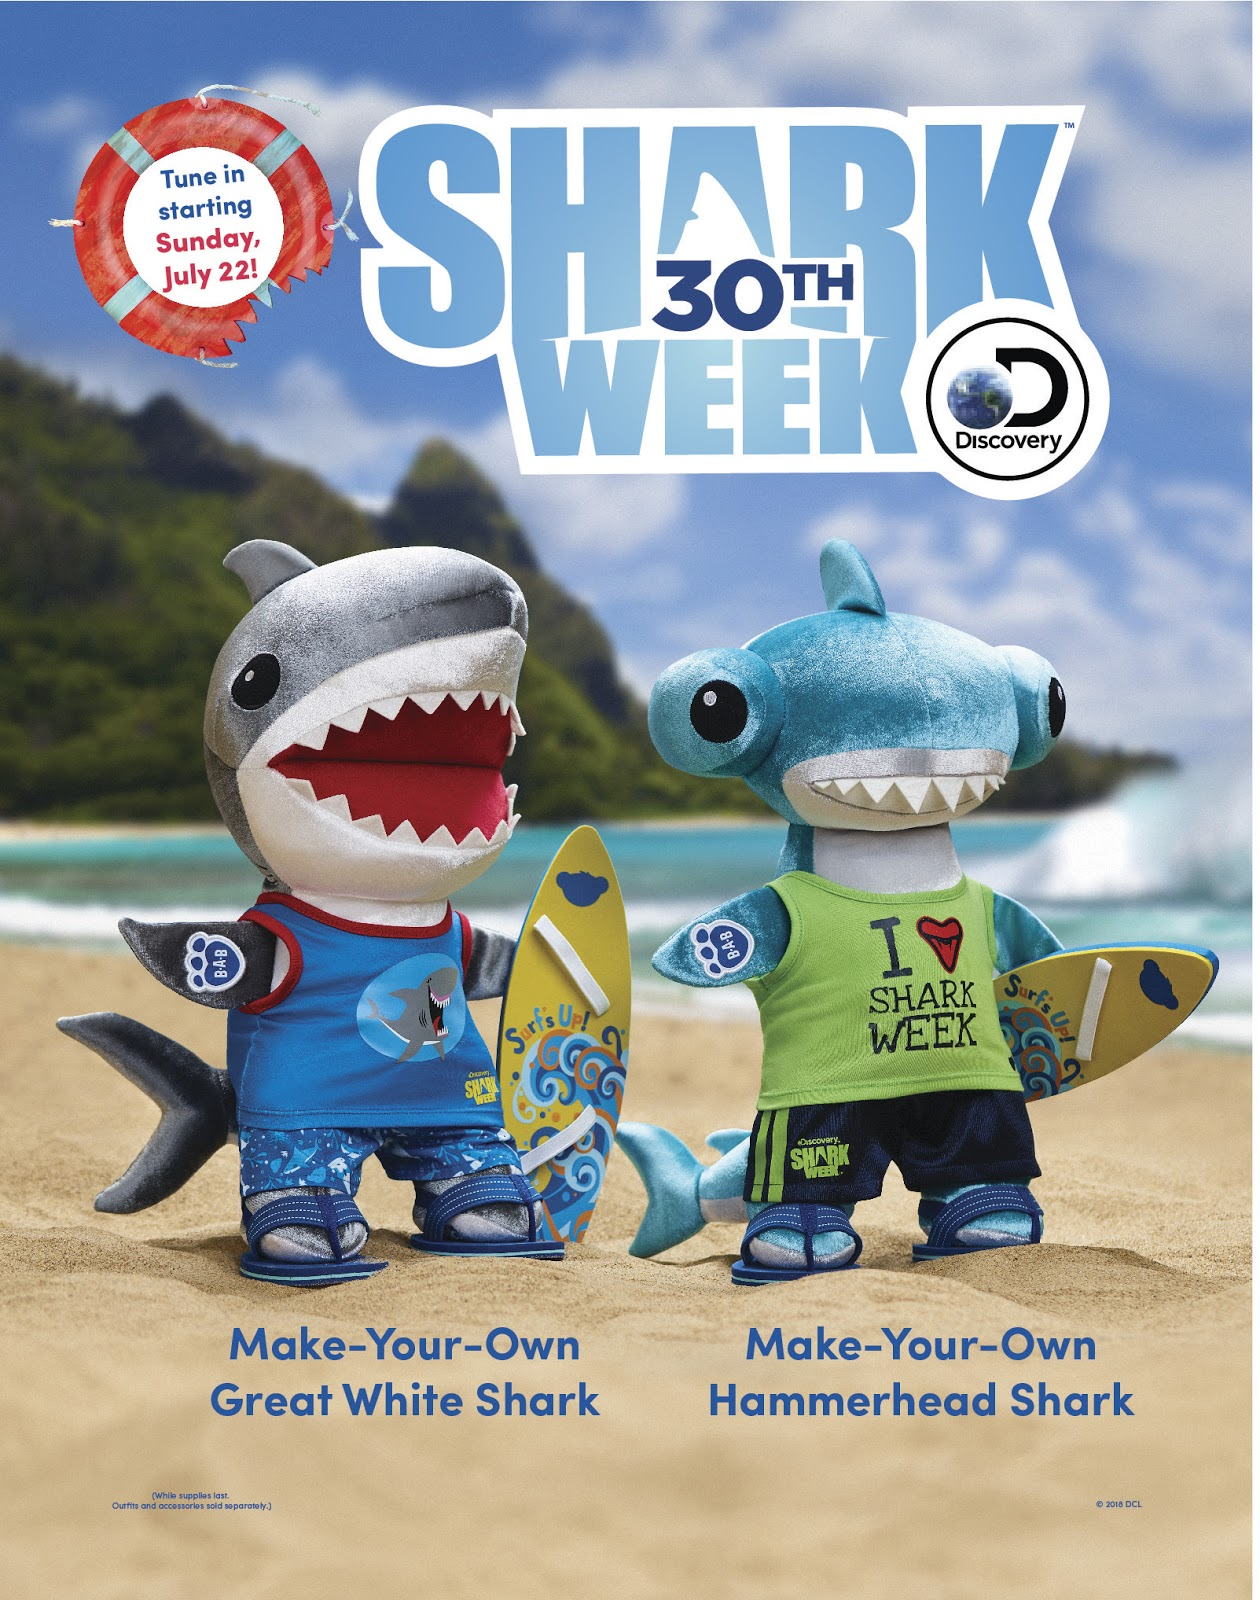 Idle Hands: Get Geared Up for SHARK WEEK!!